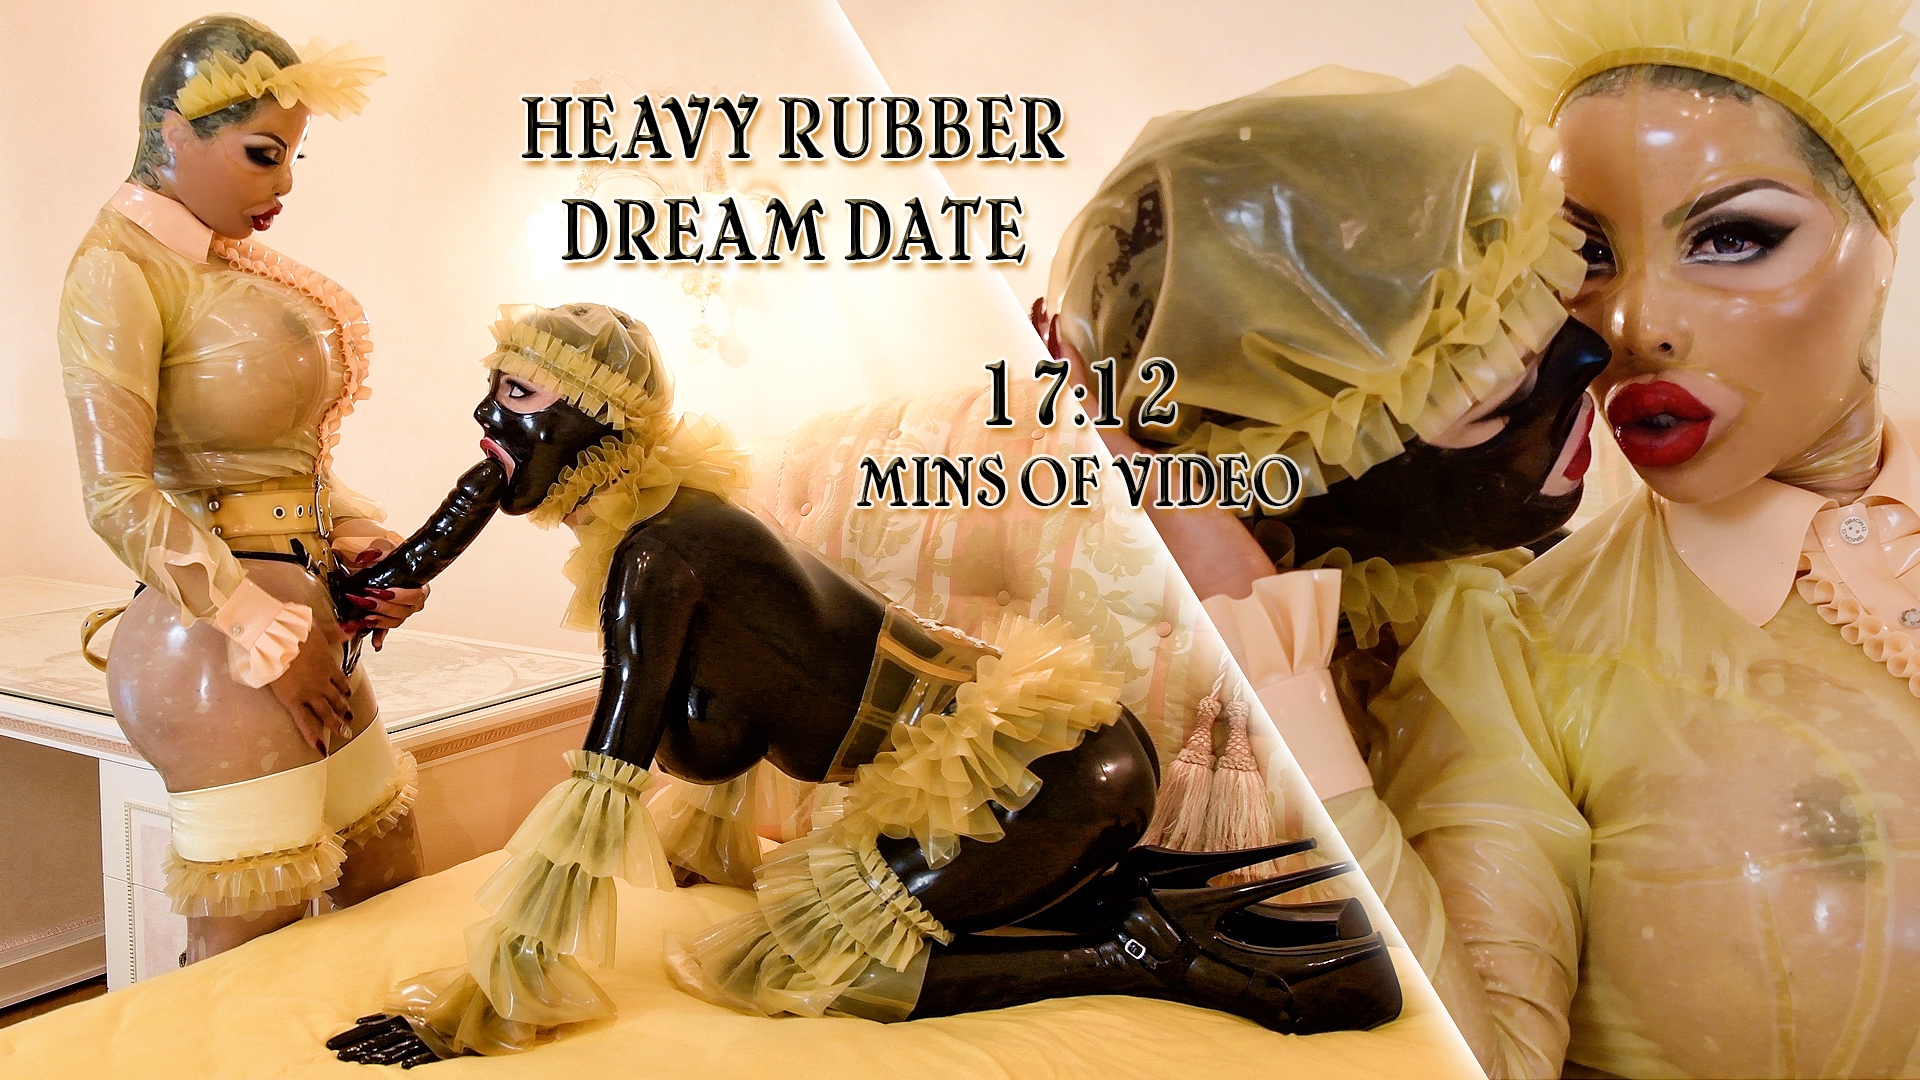 Haavy Rubber Dream Date